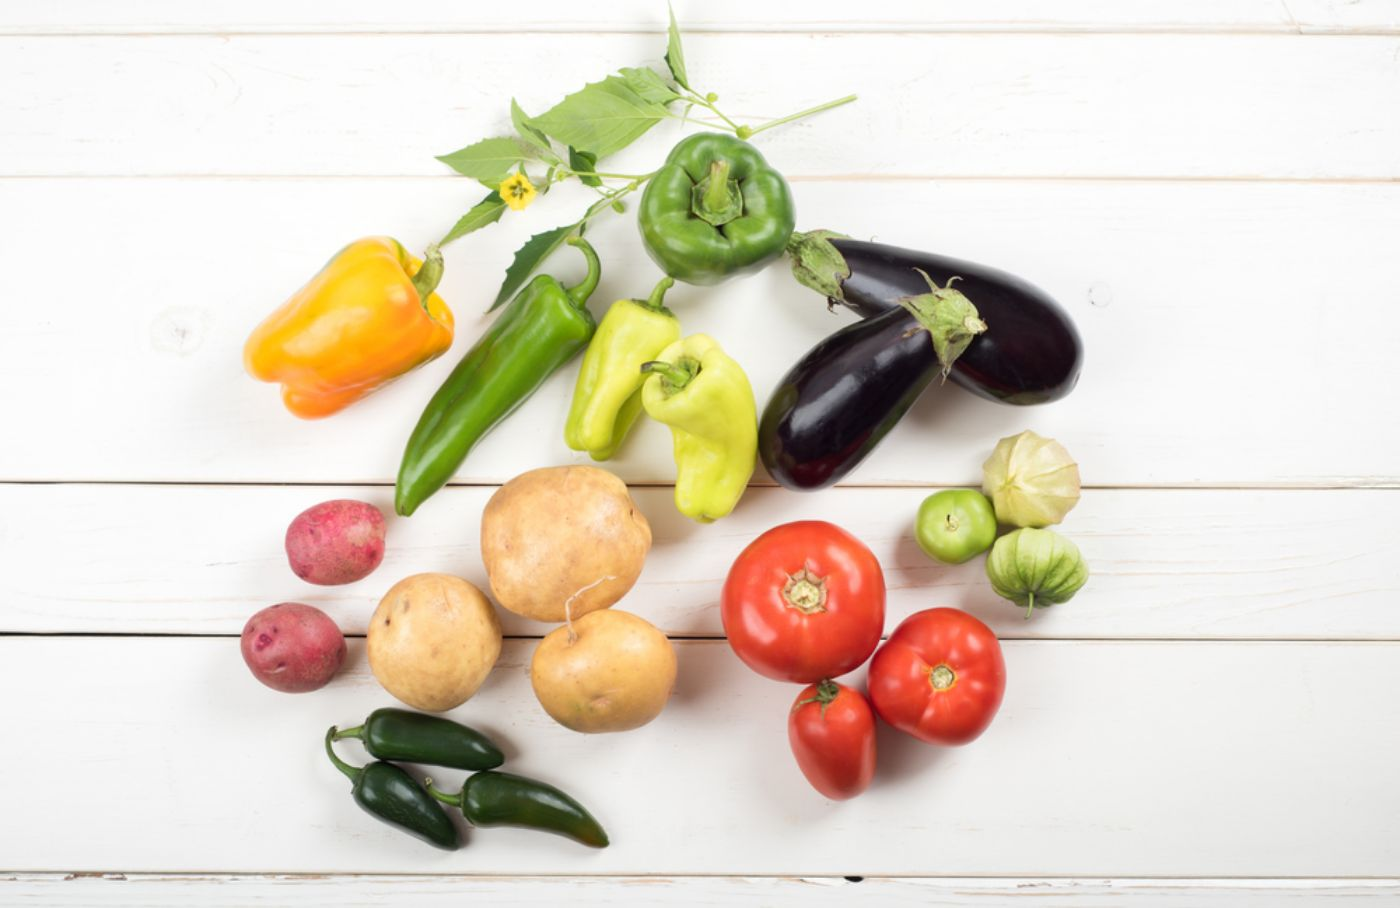 Exactly What Are Nightshade Vegetables?